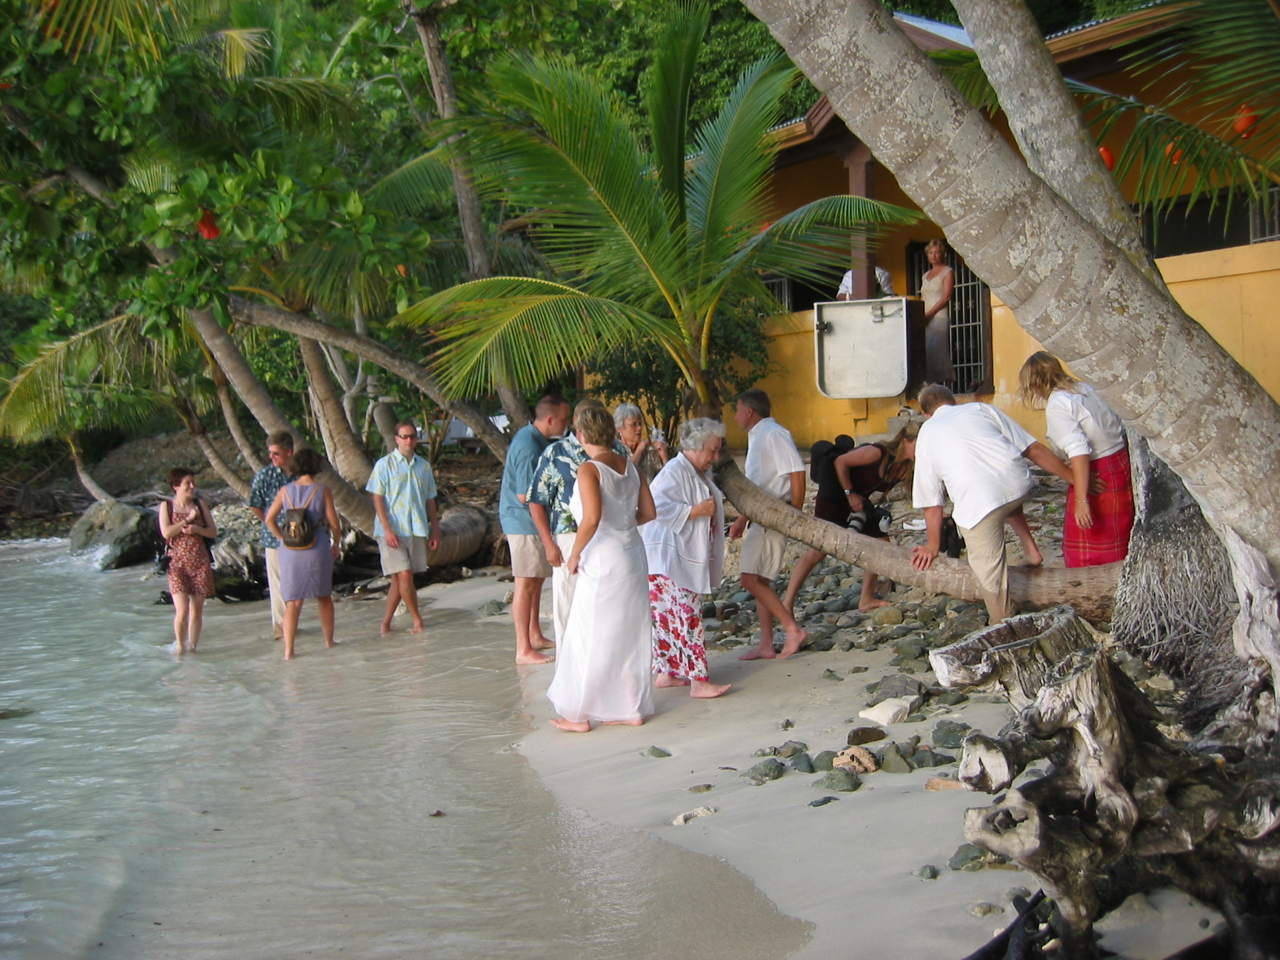 Day 6 - Bridal shower at Westin pool for all women on island. Groomsmen had breakfast then helped organize Oppenheimer Pavilion. Sunset wedding on Gibney Beach with reception at pavilion including island music. Appetizers, dinner and drinks by Passion Fruit Chefs.